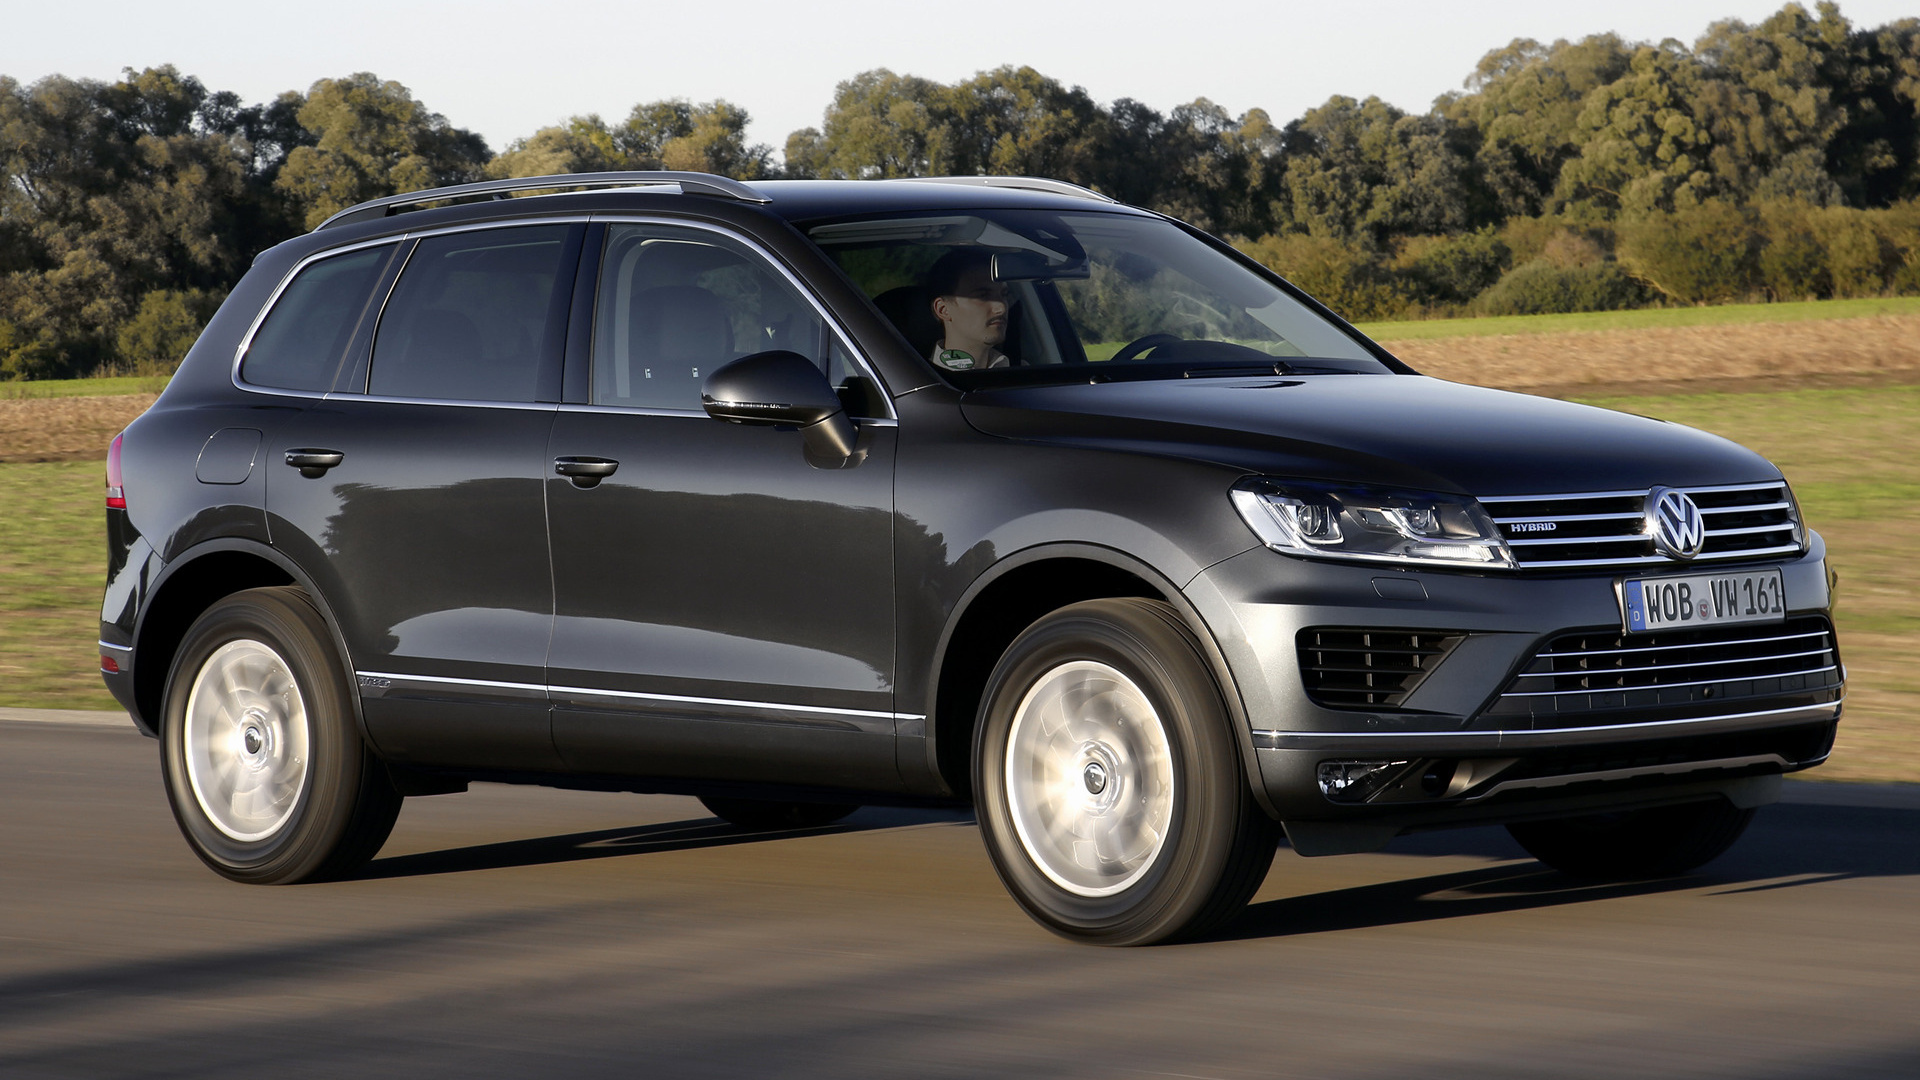 2014 Volkswagen Touareg Hybrid Owners Manual